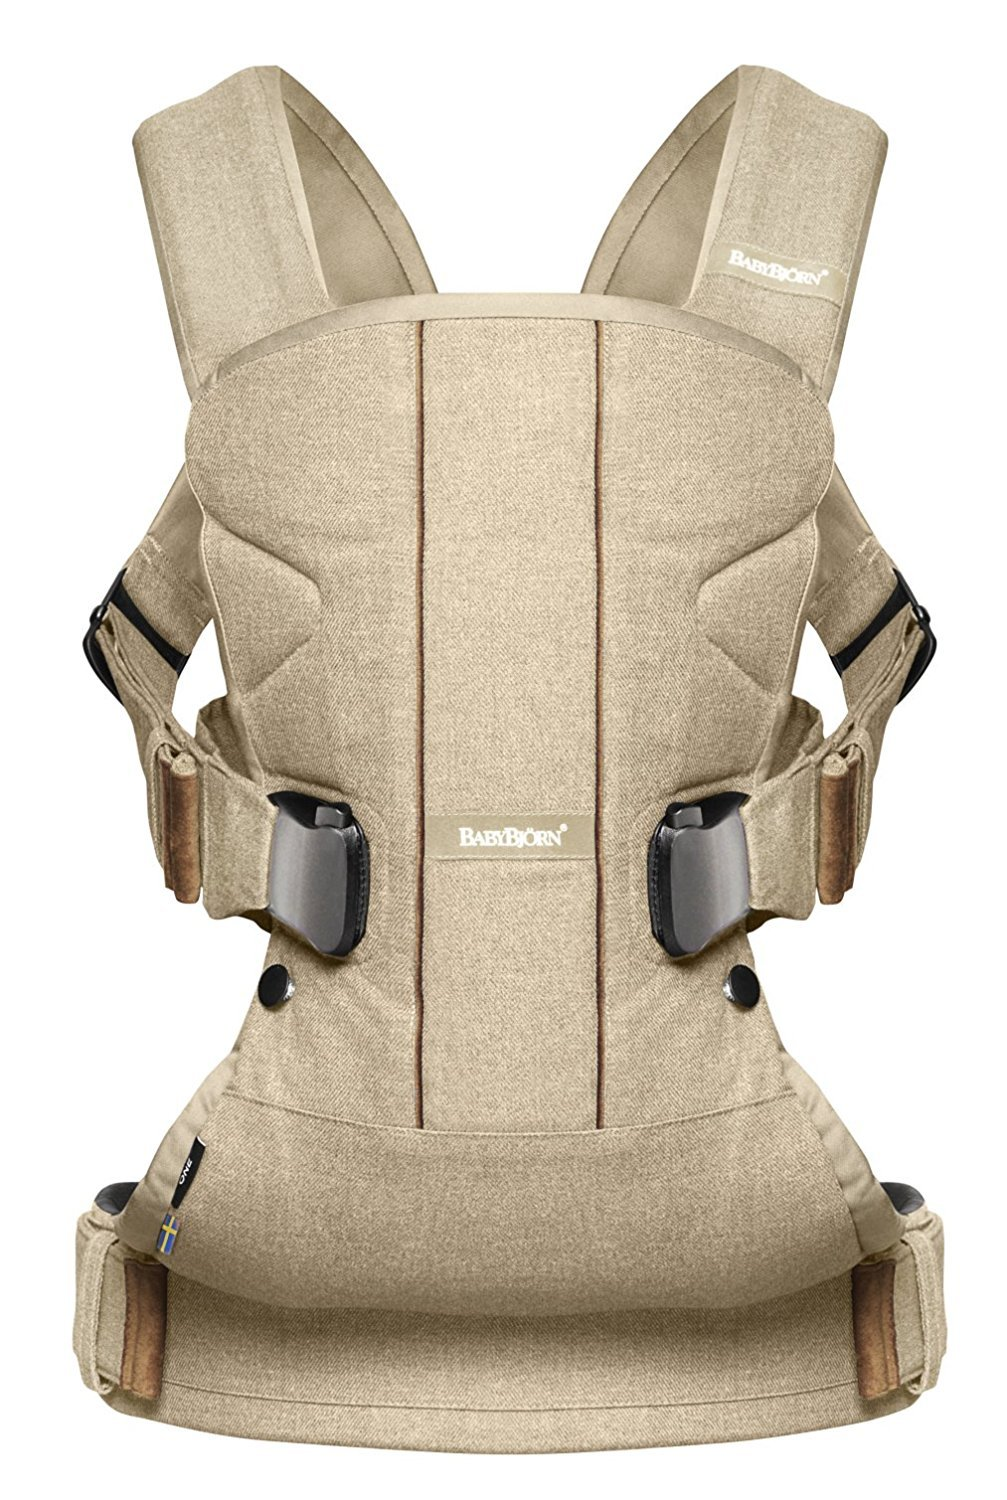 Ķengursoma BabyBjorn Baby Carrier ONE Cotton Mix Birchwood Beige 93078